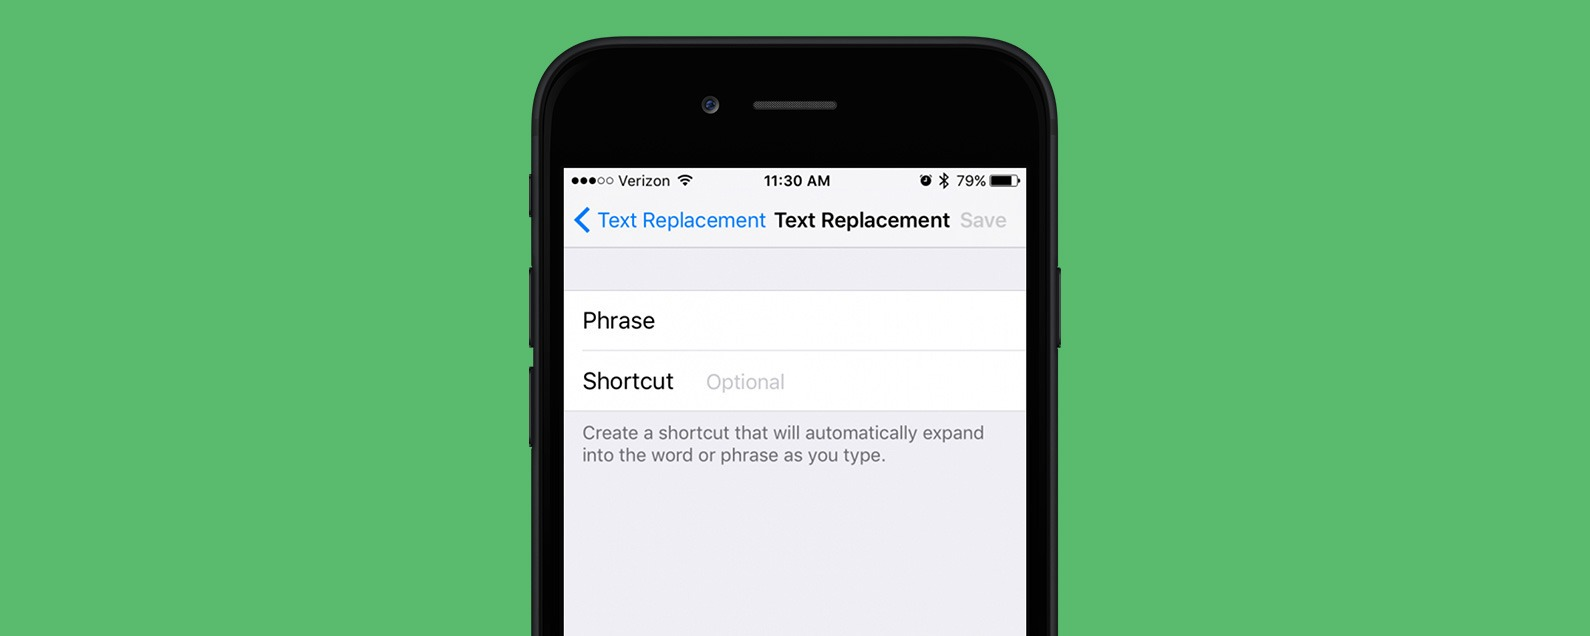 How to Add Words to the iPhone Dictionary & Get Better Autocorrect